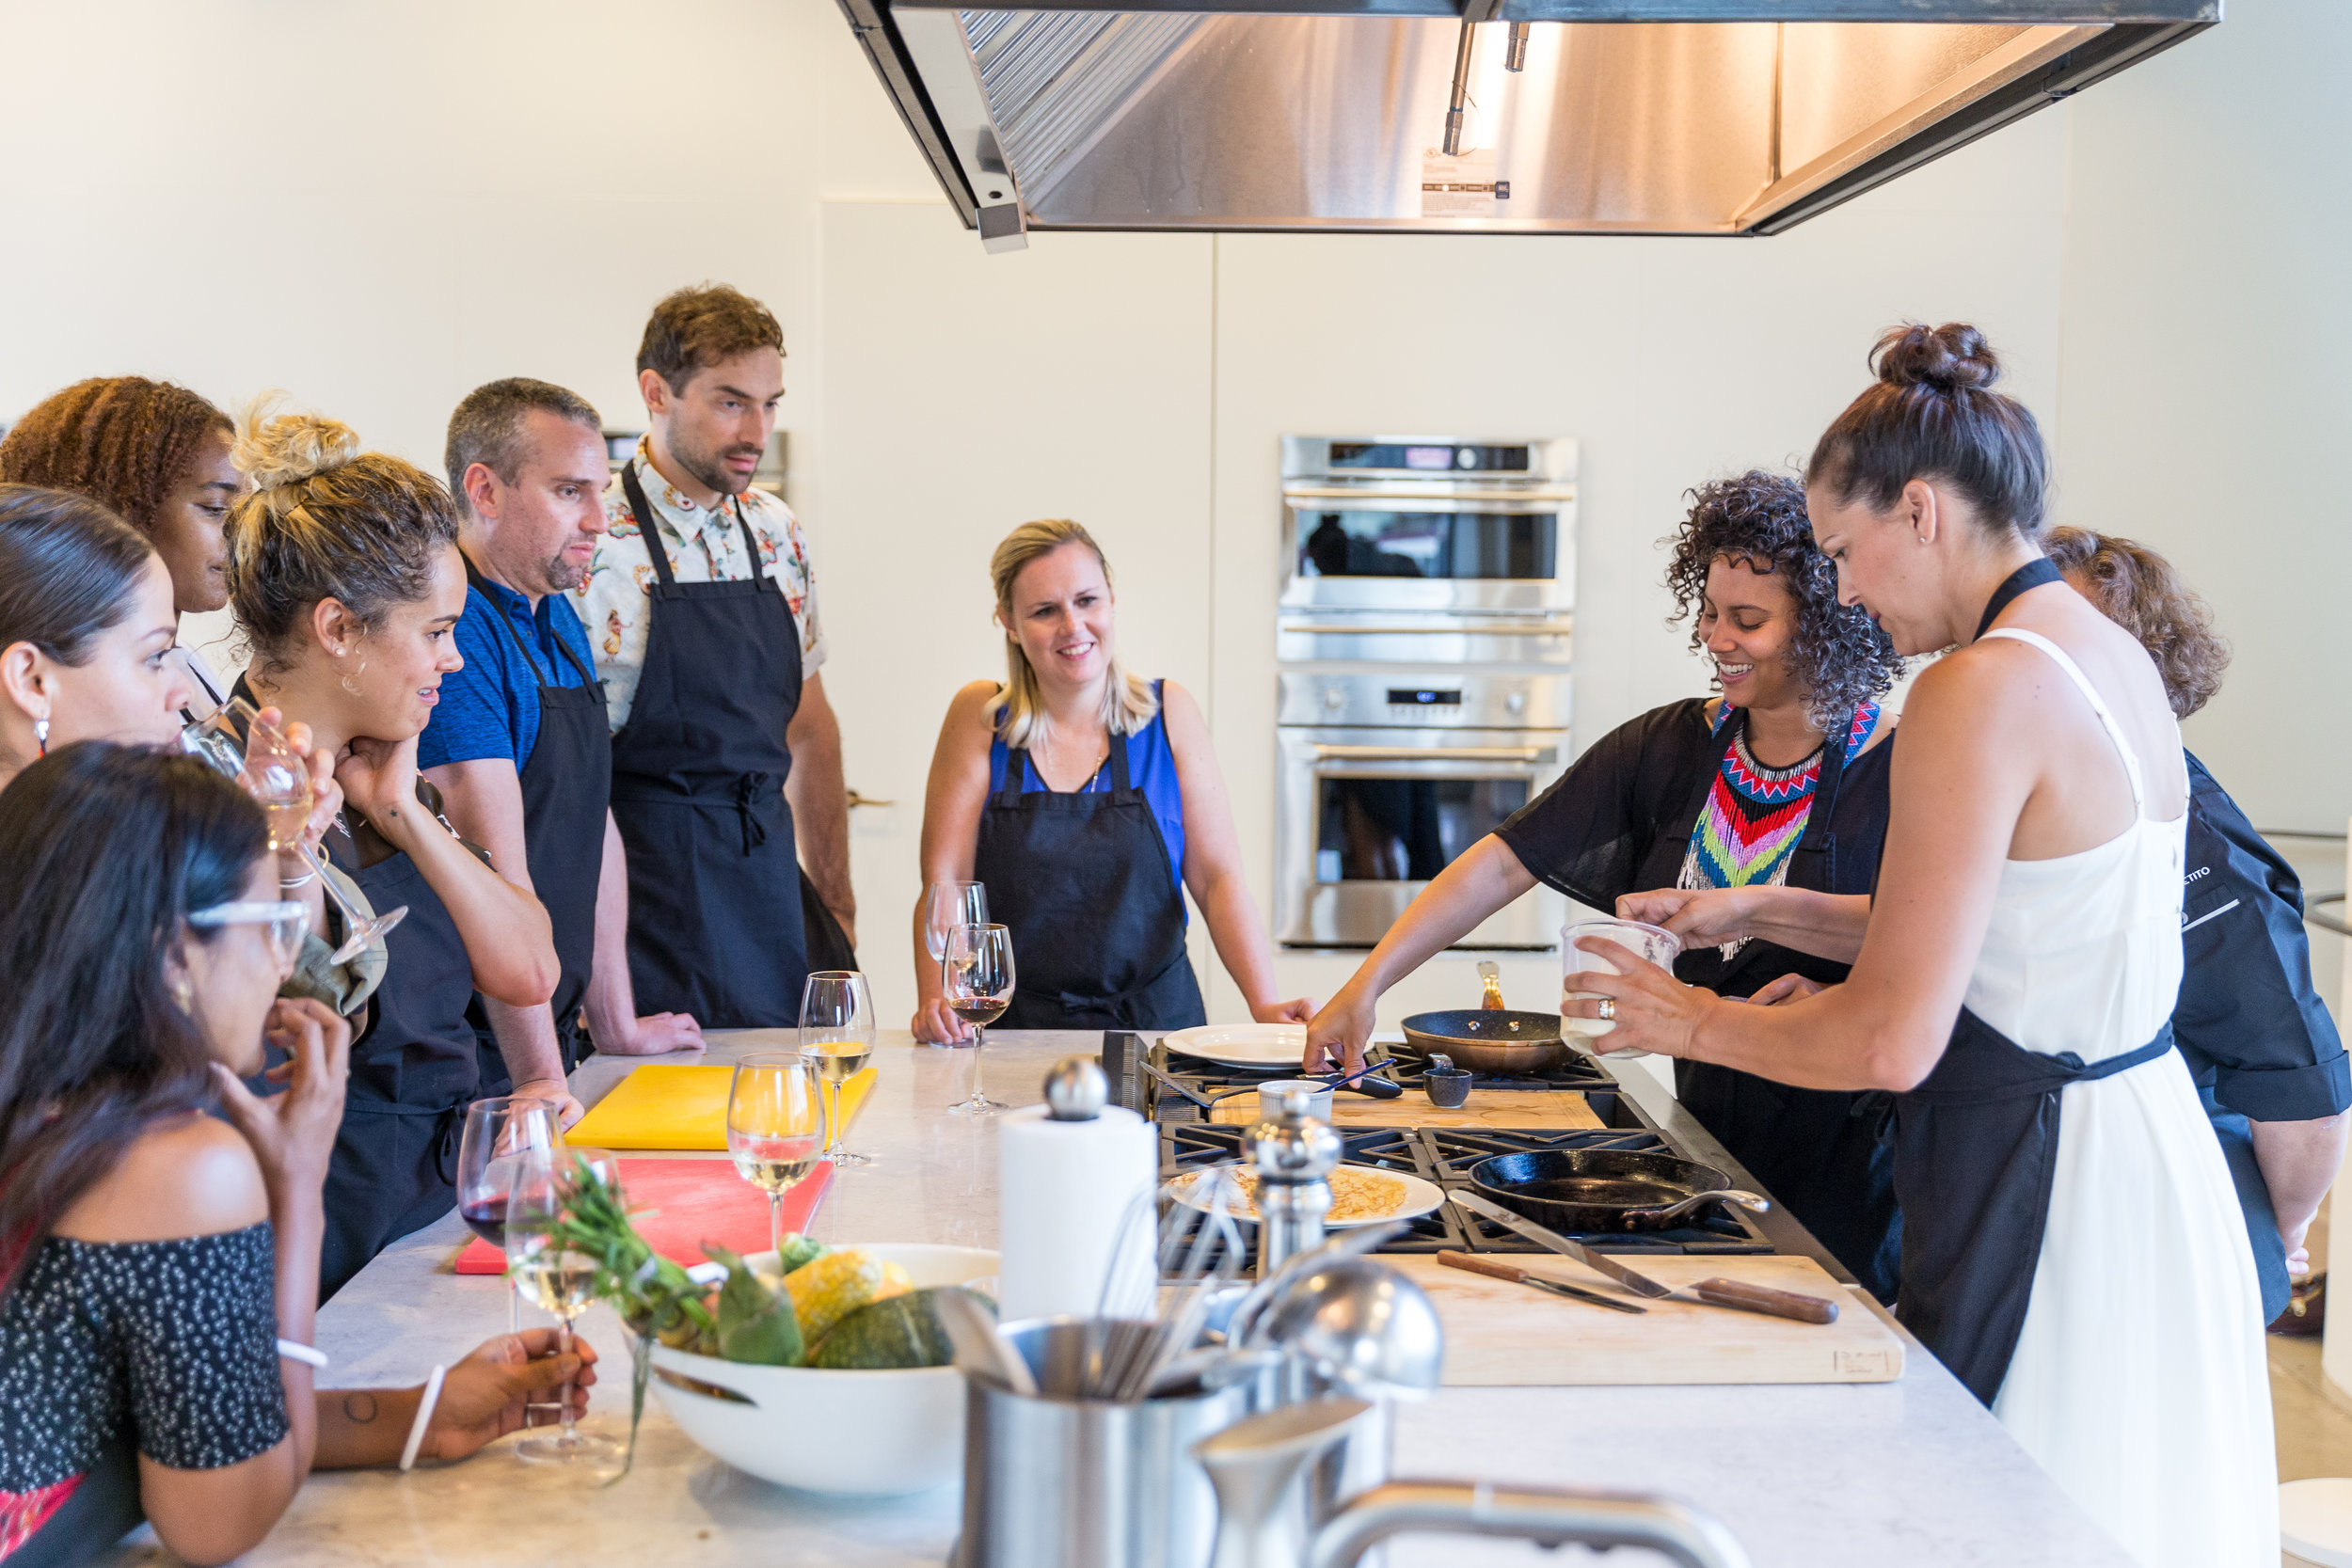 Looking for something fun and different for your next corporate team-building event? We have an all-in-one package to entertain and engage your group that will have them smiling, sharing and bonding over the best thing of all - FOOD!  Work with us to explore limitless menu options!